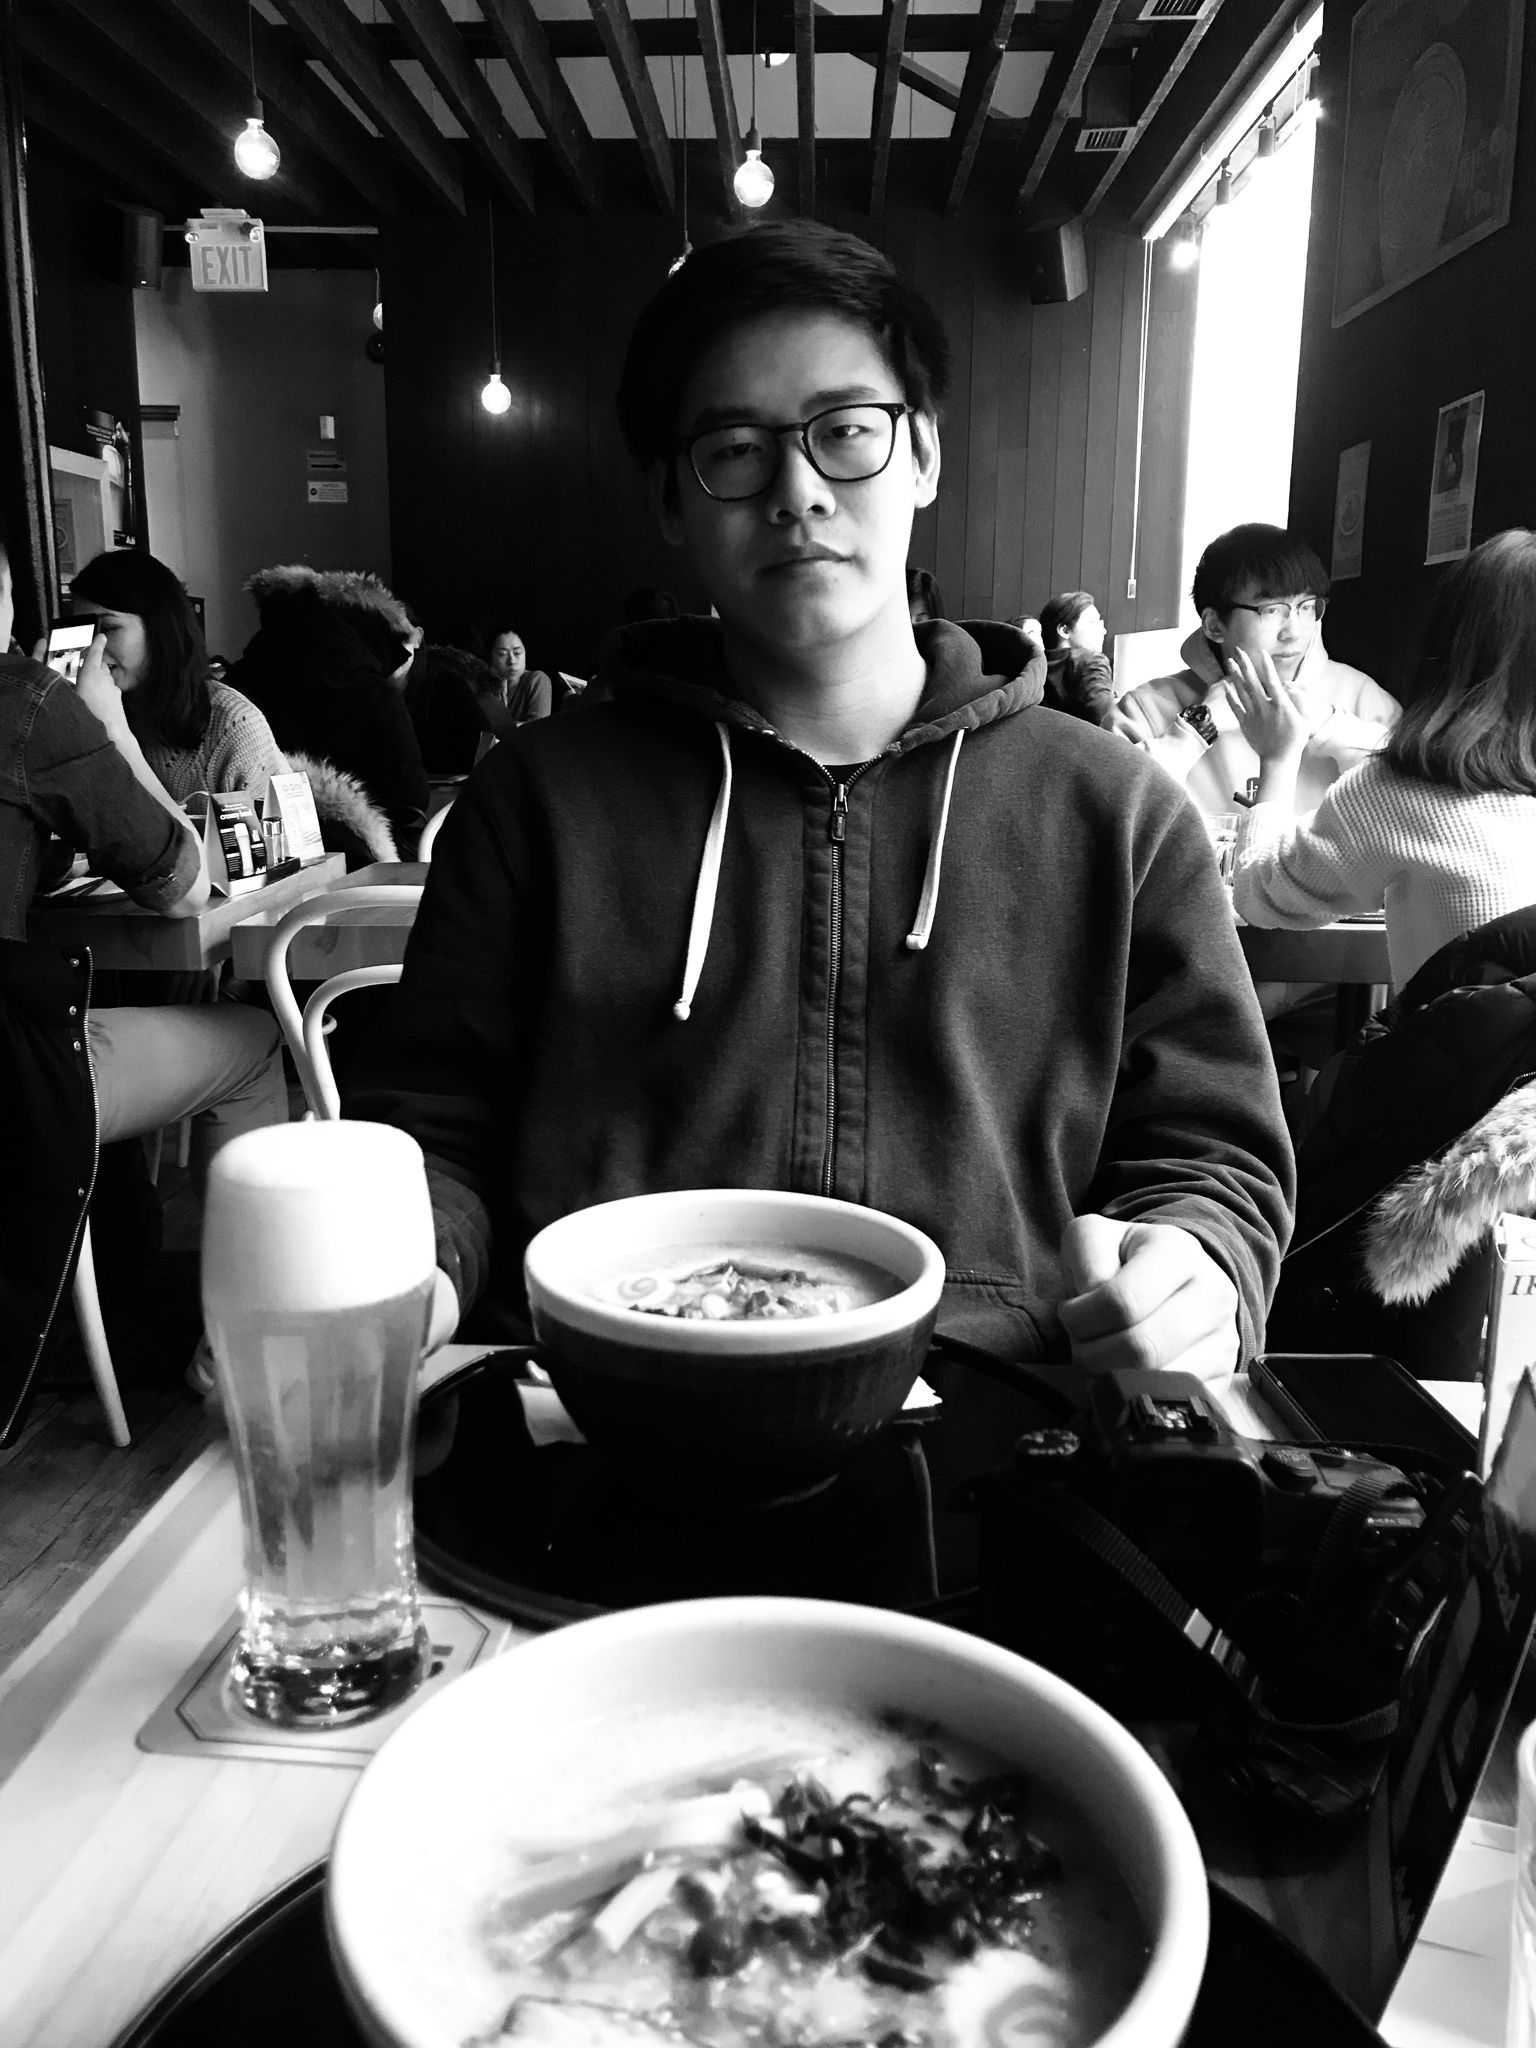 Ramen is the perfect thing to grab while waiting